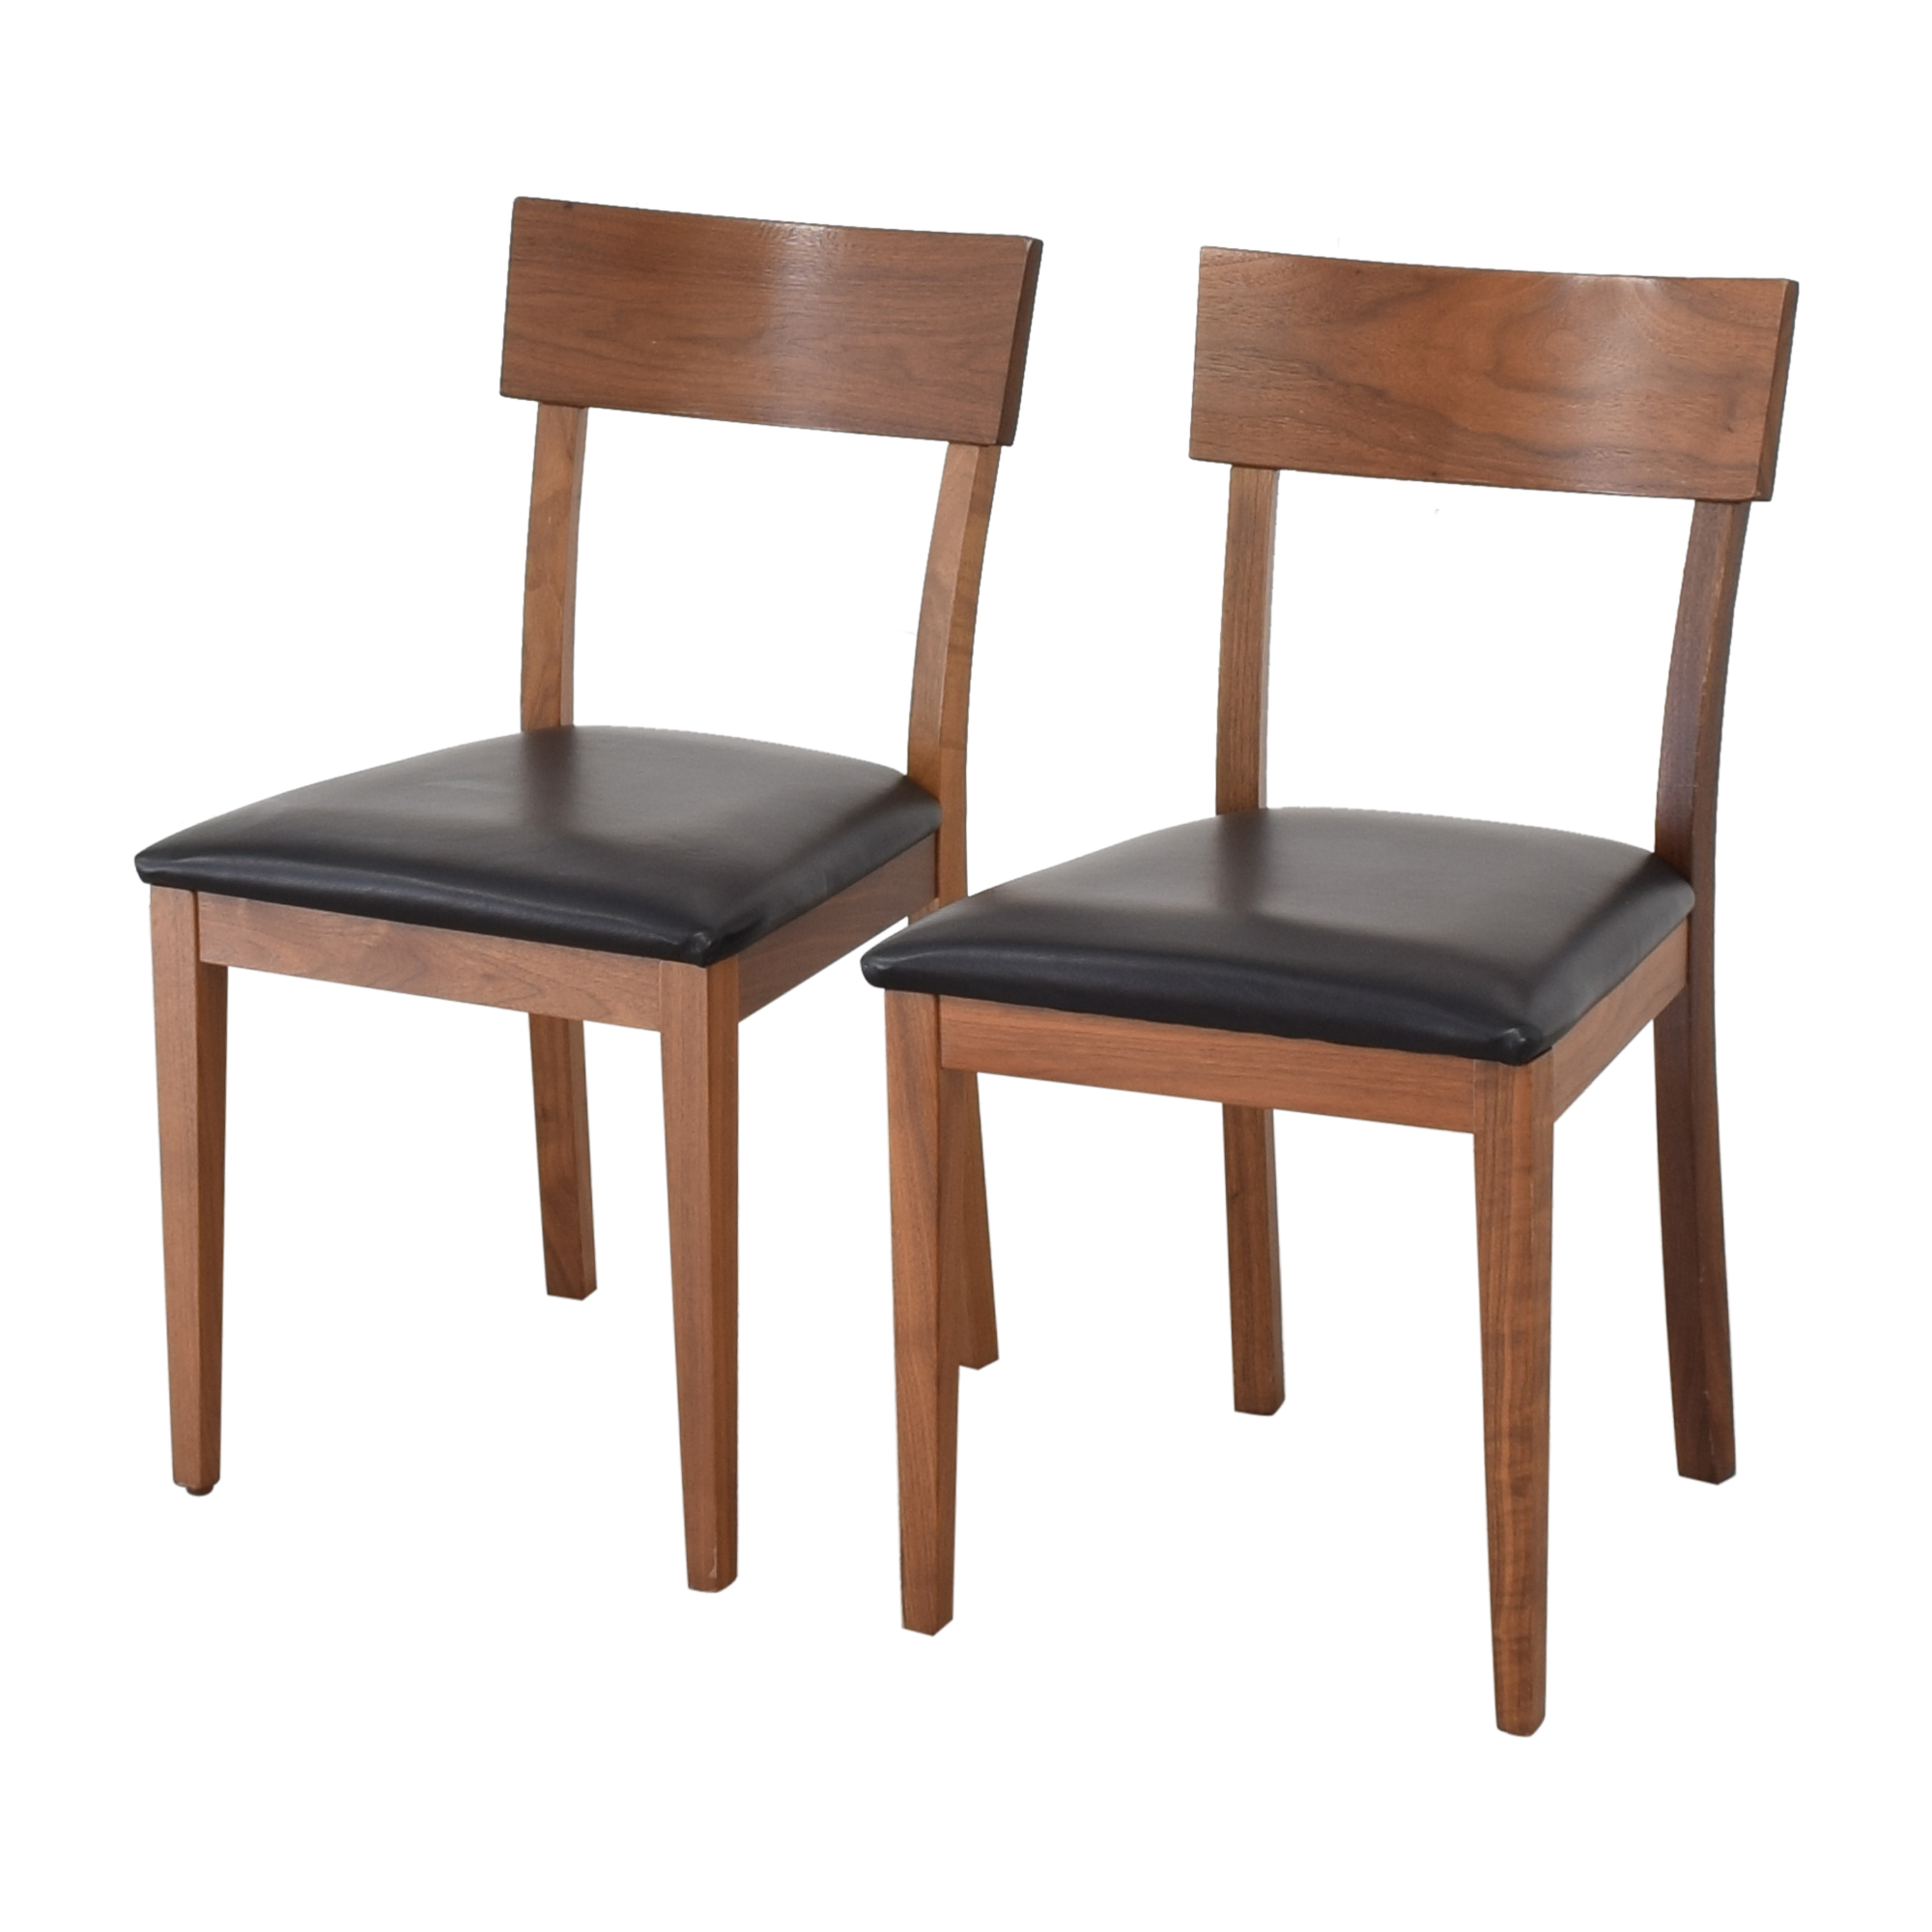 Room & Board Room & Board Doyle Chairs with Fabric Seat discount